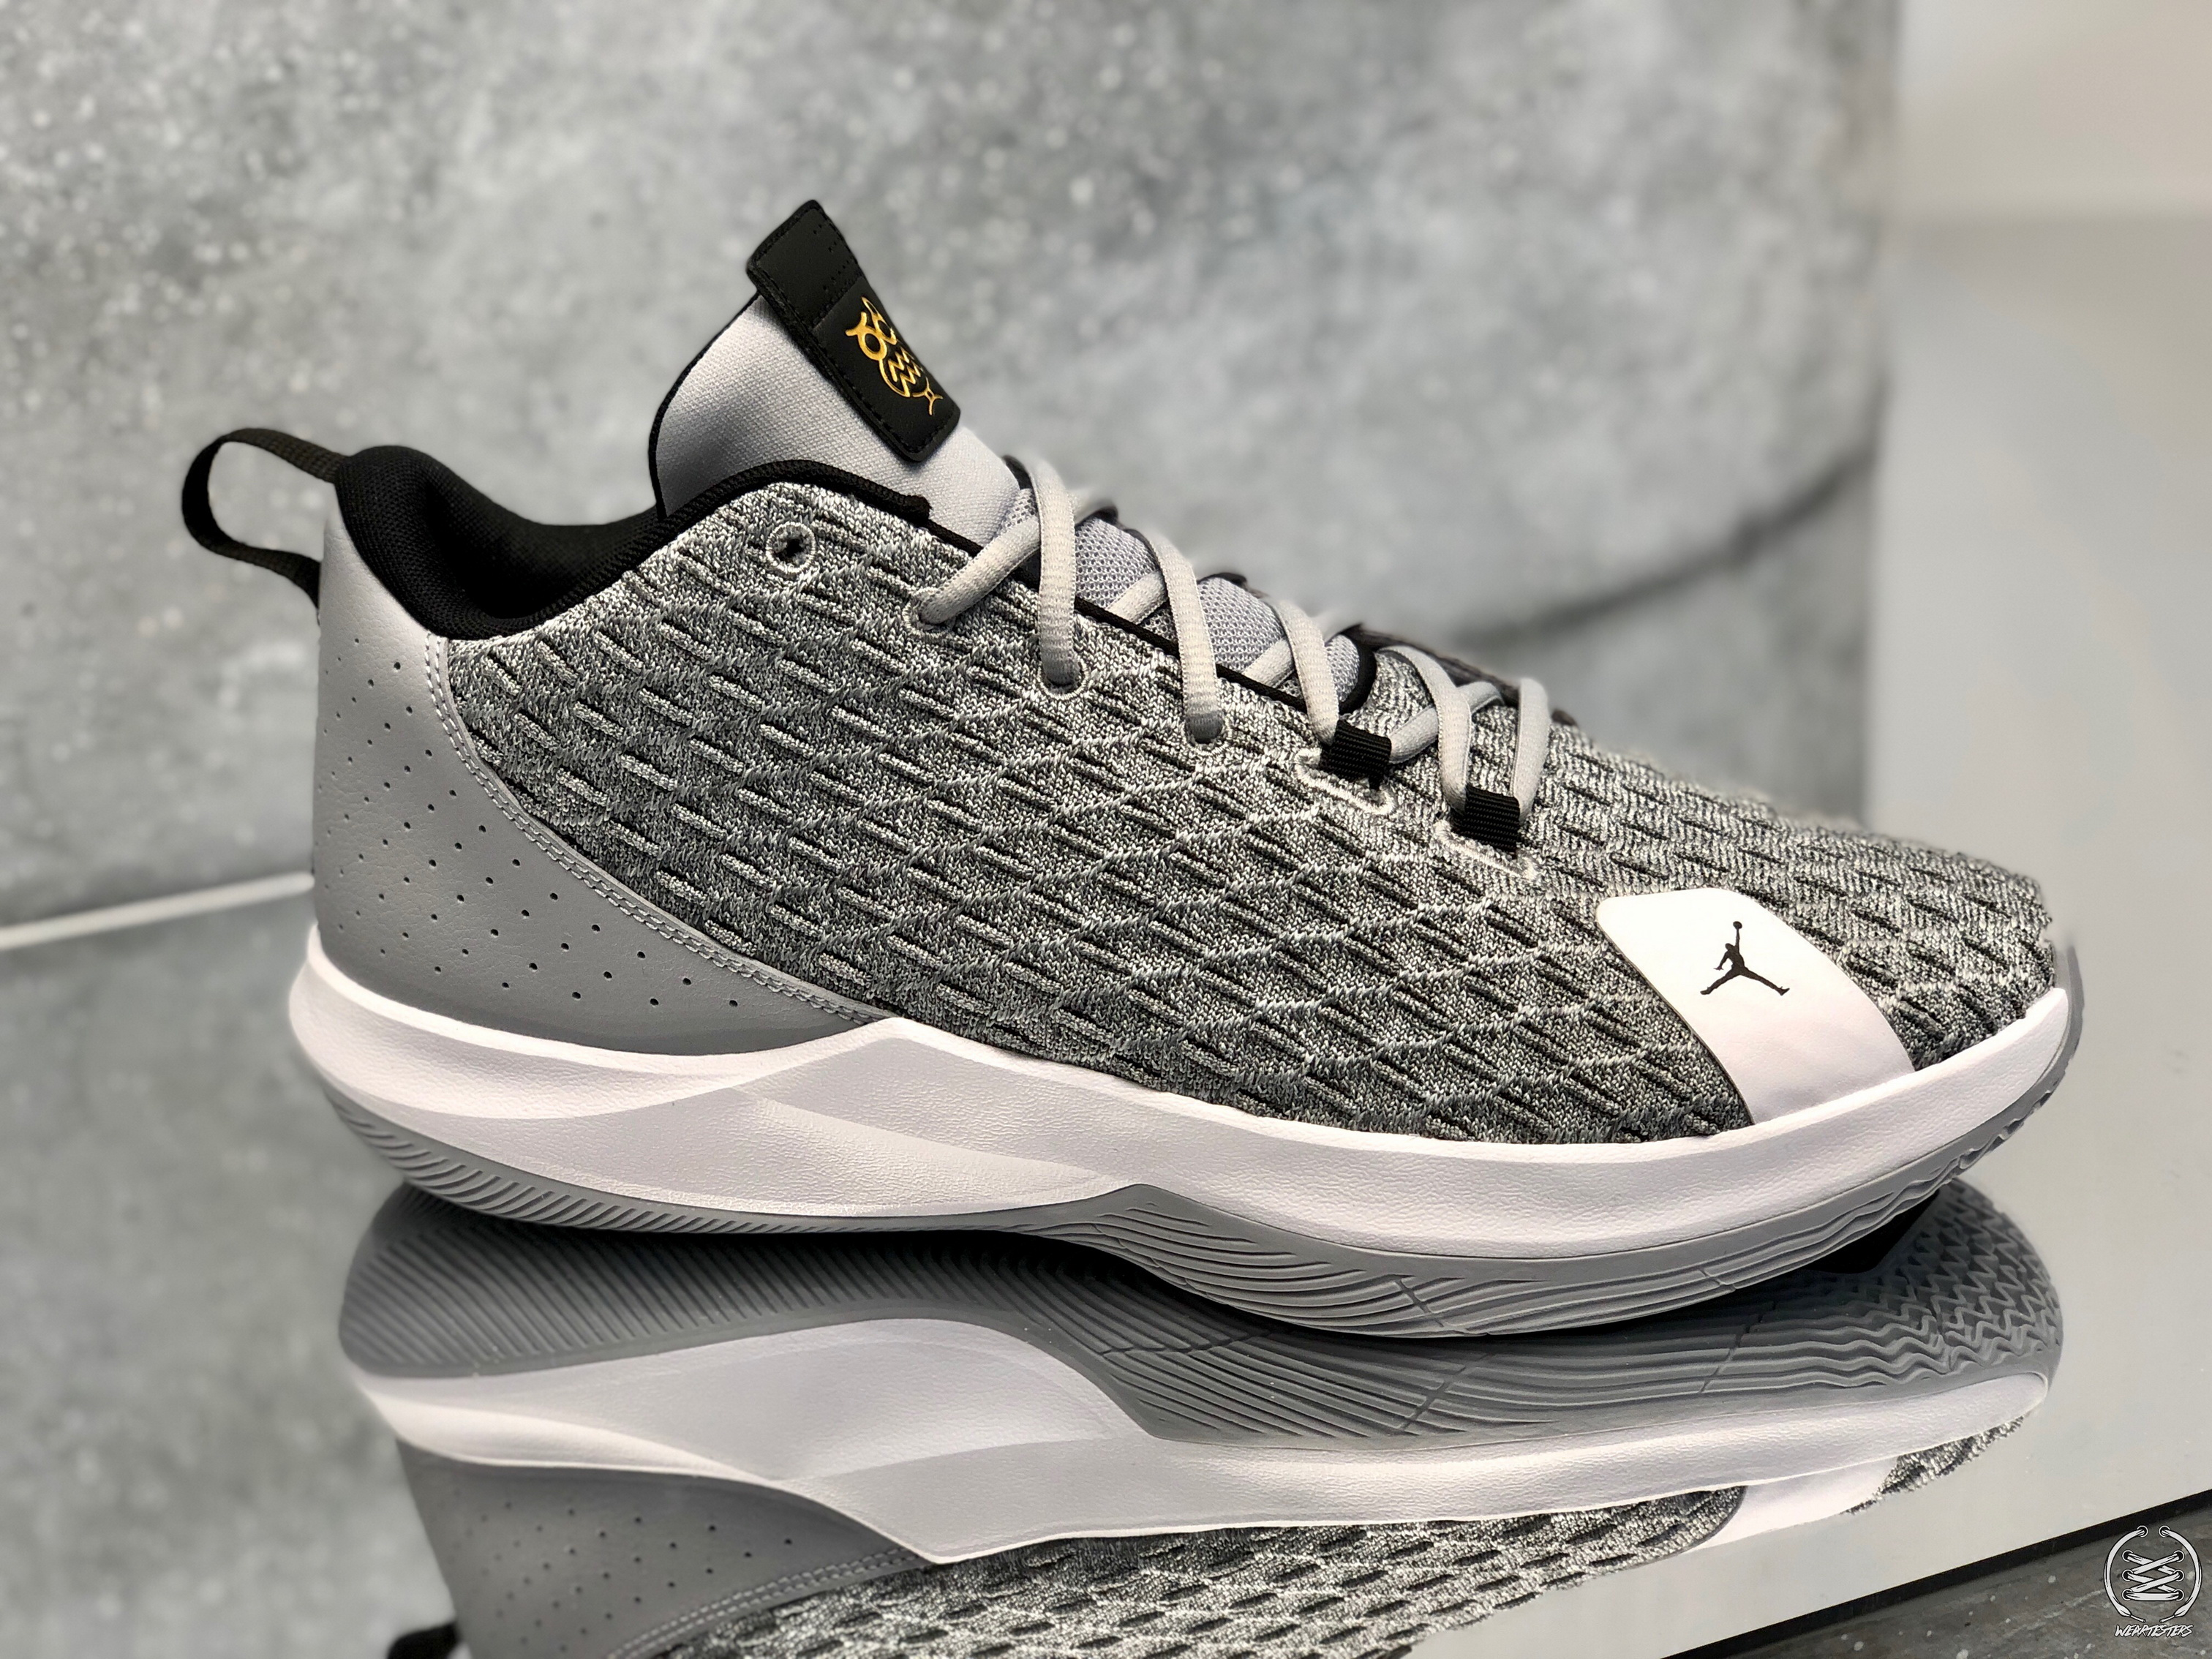 sale retailer 61f13 9440a A Detailed Look at the Upcoming Jordan CP3.12 - WearTesters